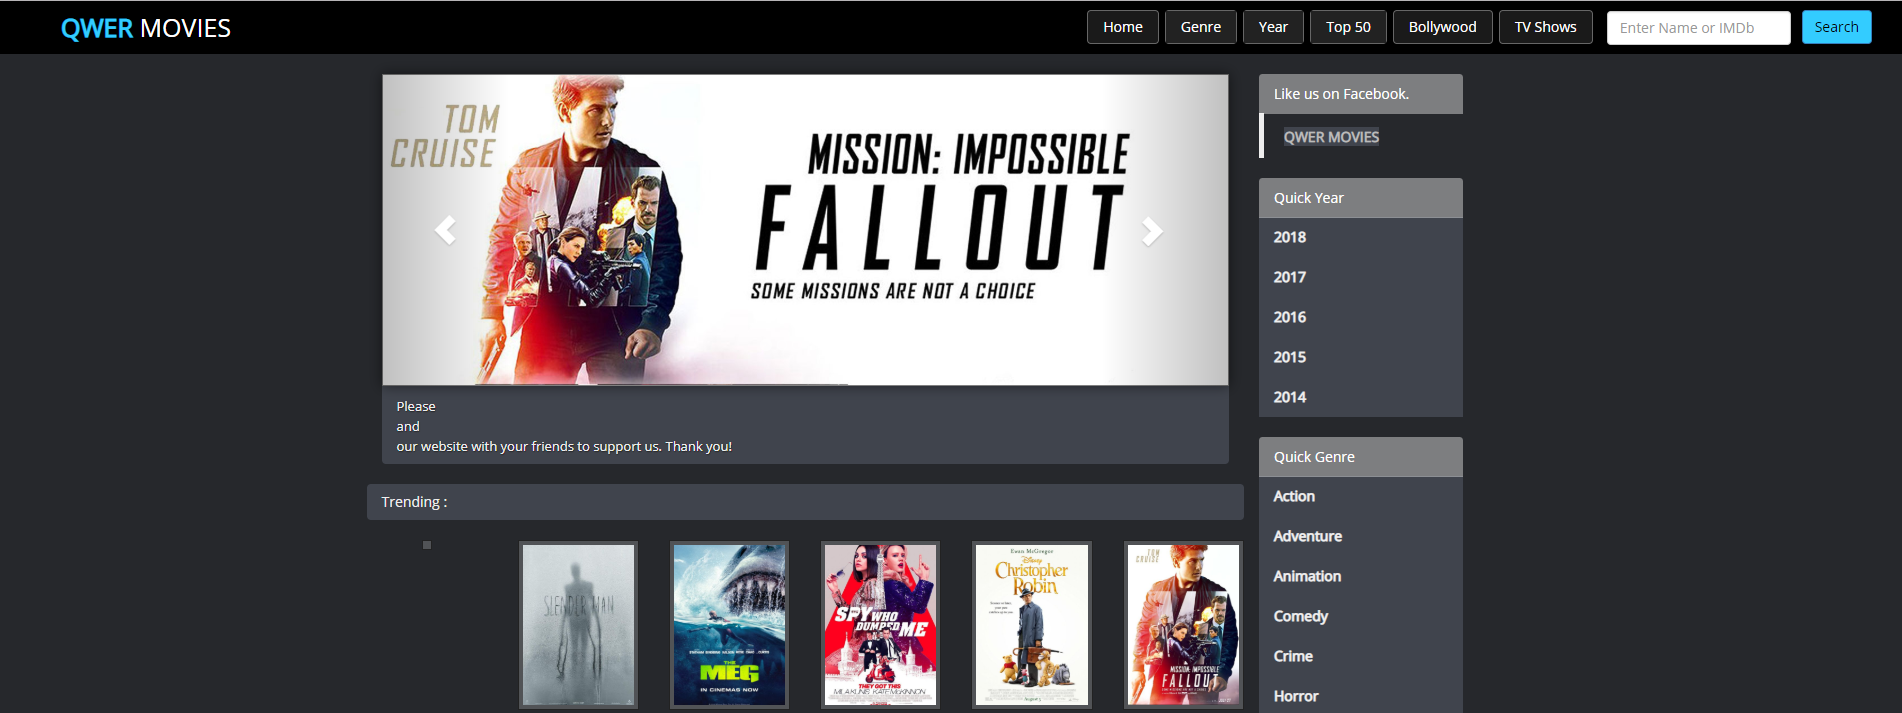 Where to download TV series in MP4? | Leawo Tutorial Center